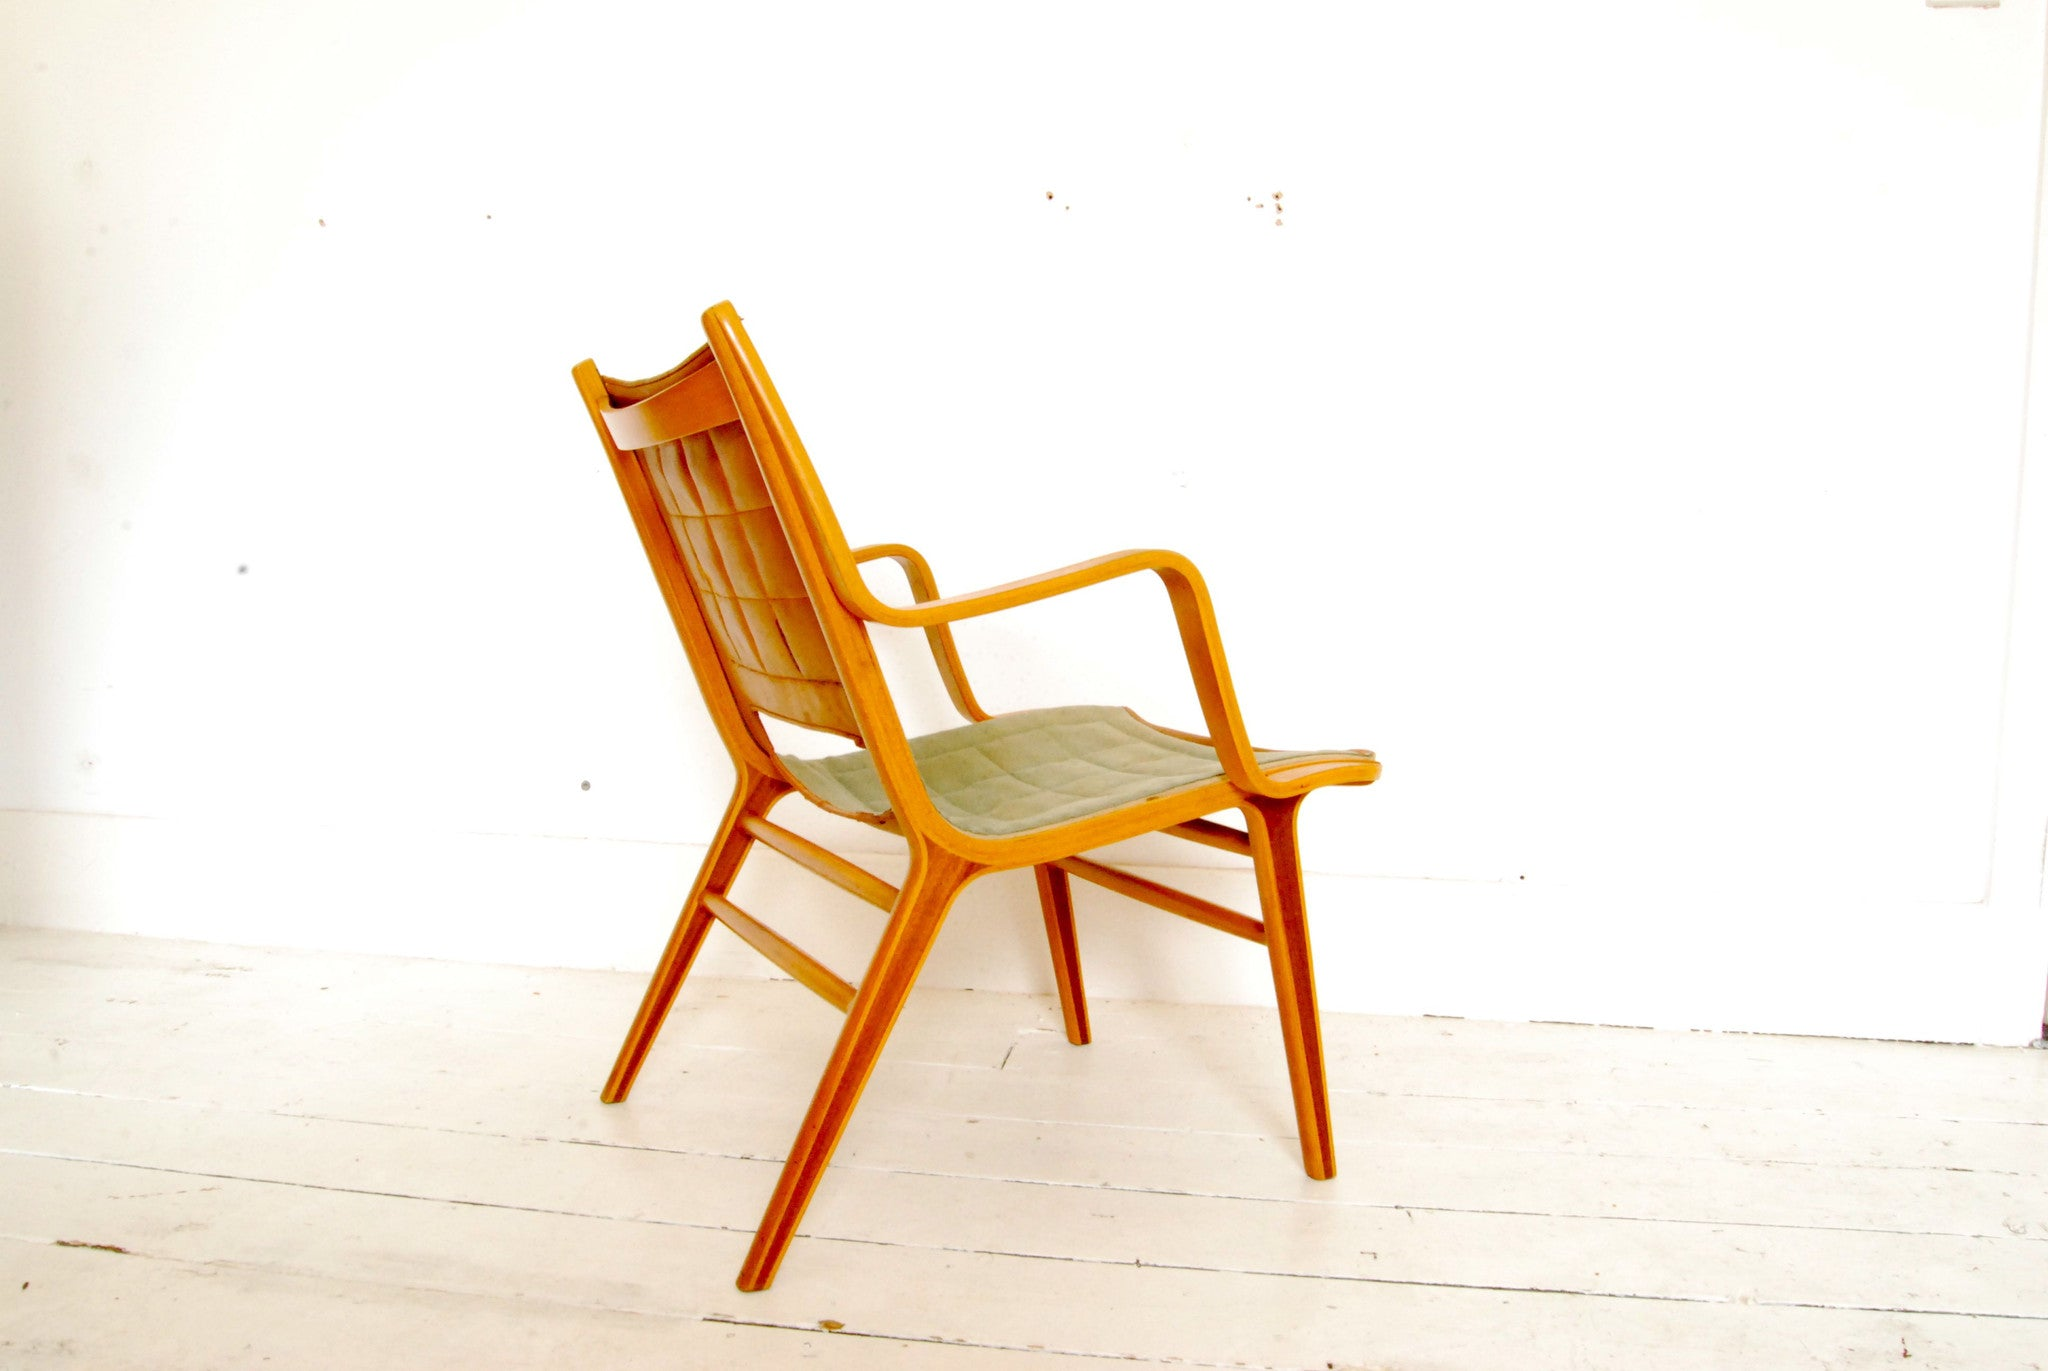 Axe chair by Peter Hvidt and Orla Mølgaard Nielsen